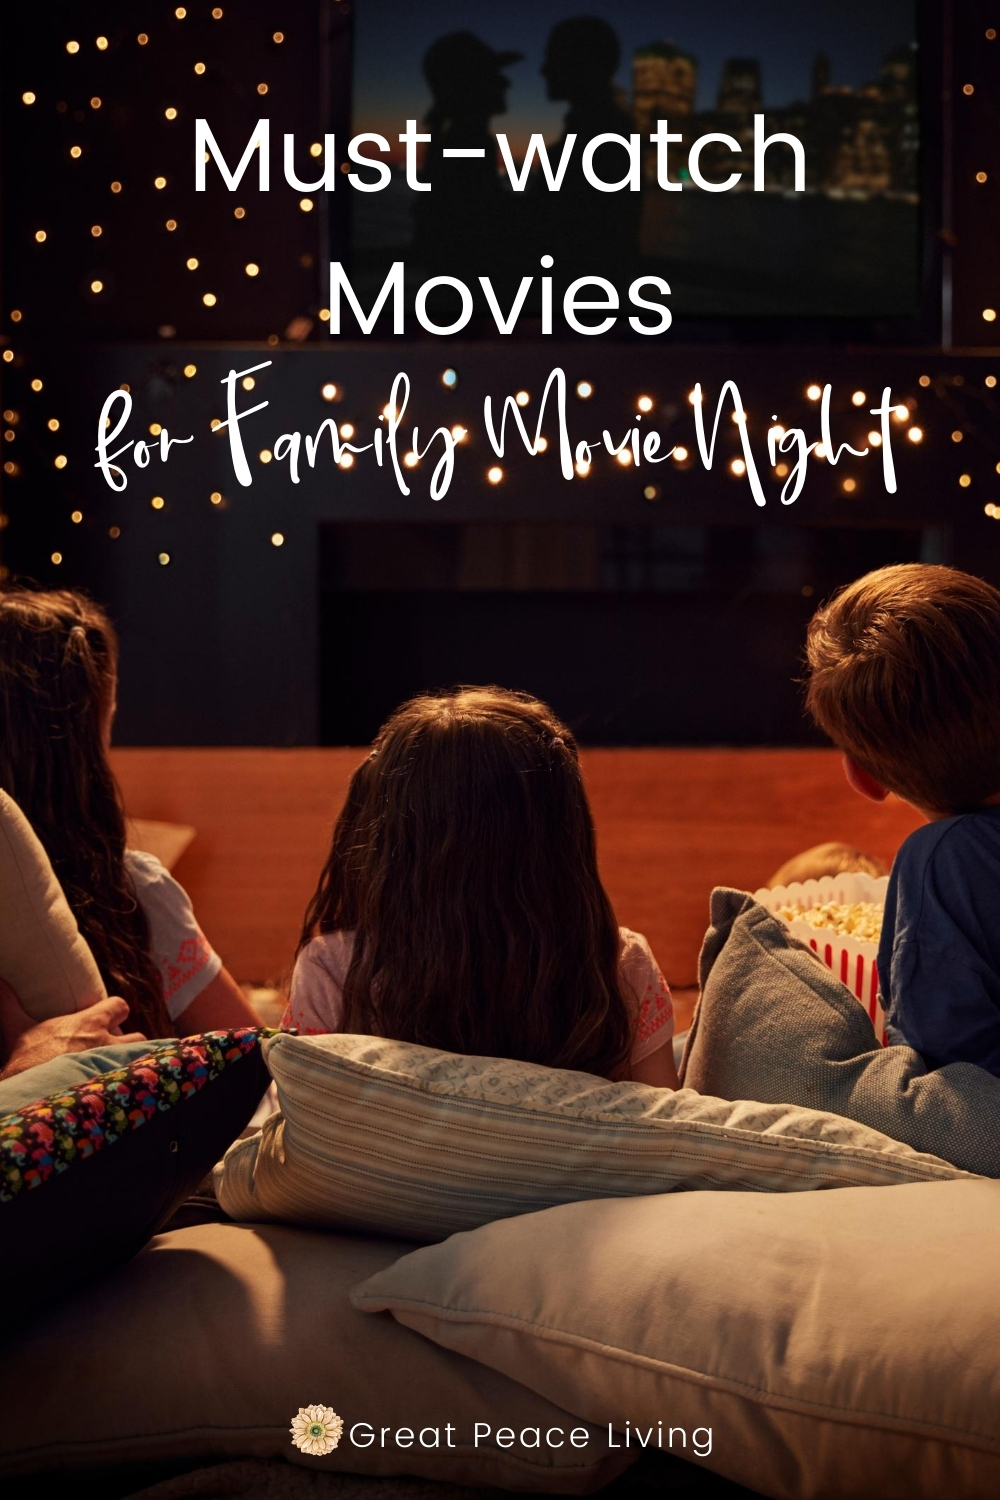 Must-watch Movies for Family Movie Nights | Great Peace Living #movienight #familymovies #familytime